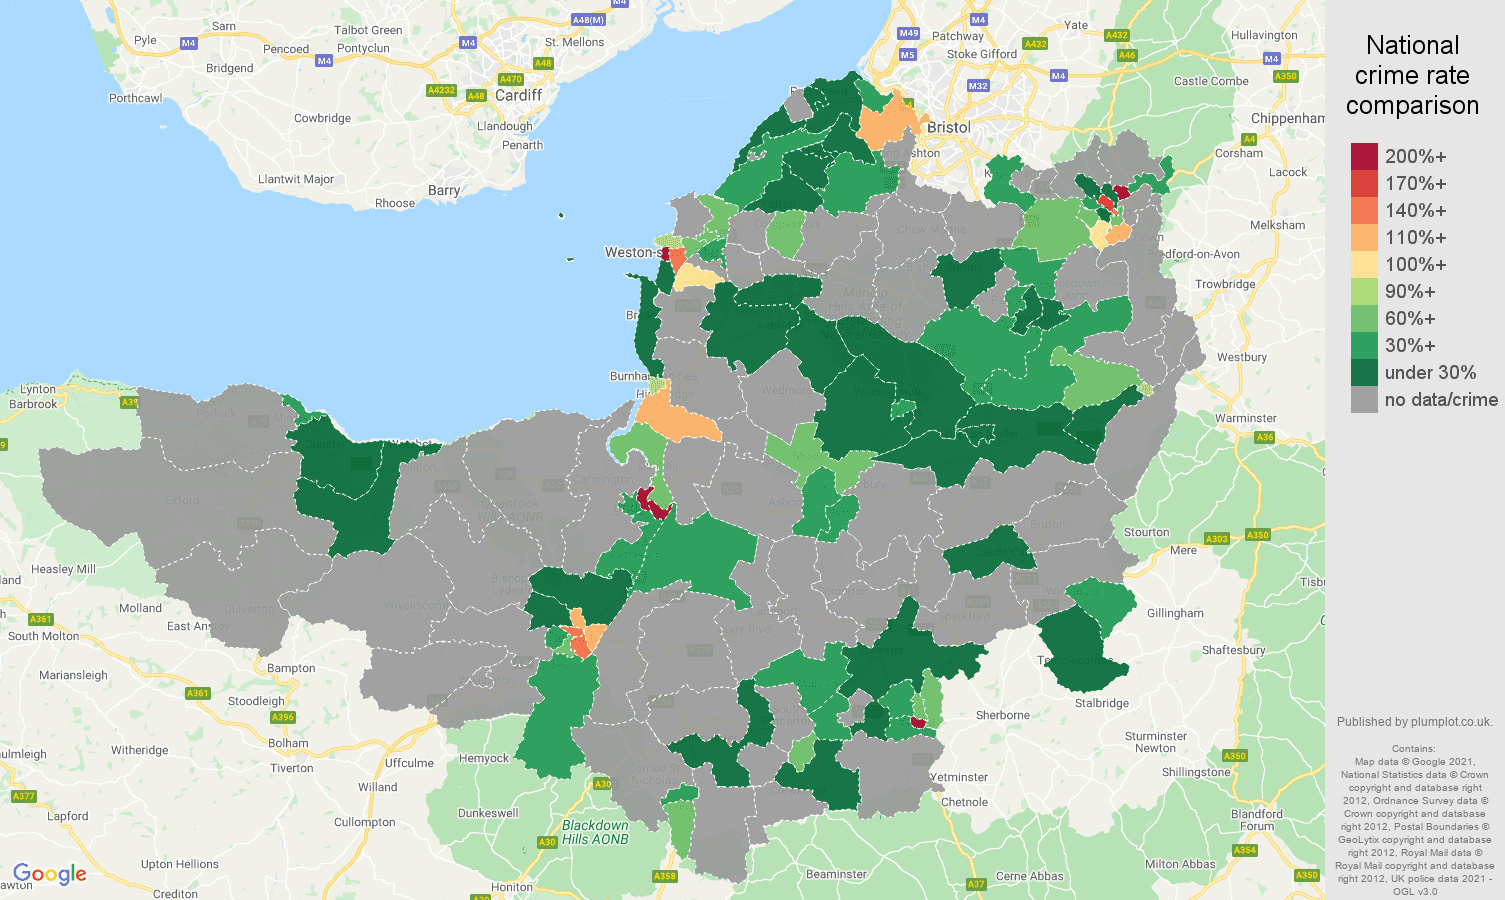 Somerset robbery crime rate comparison map